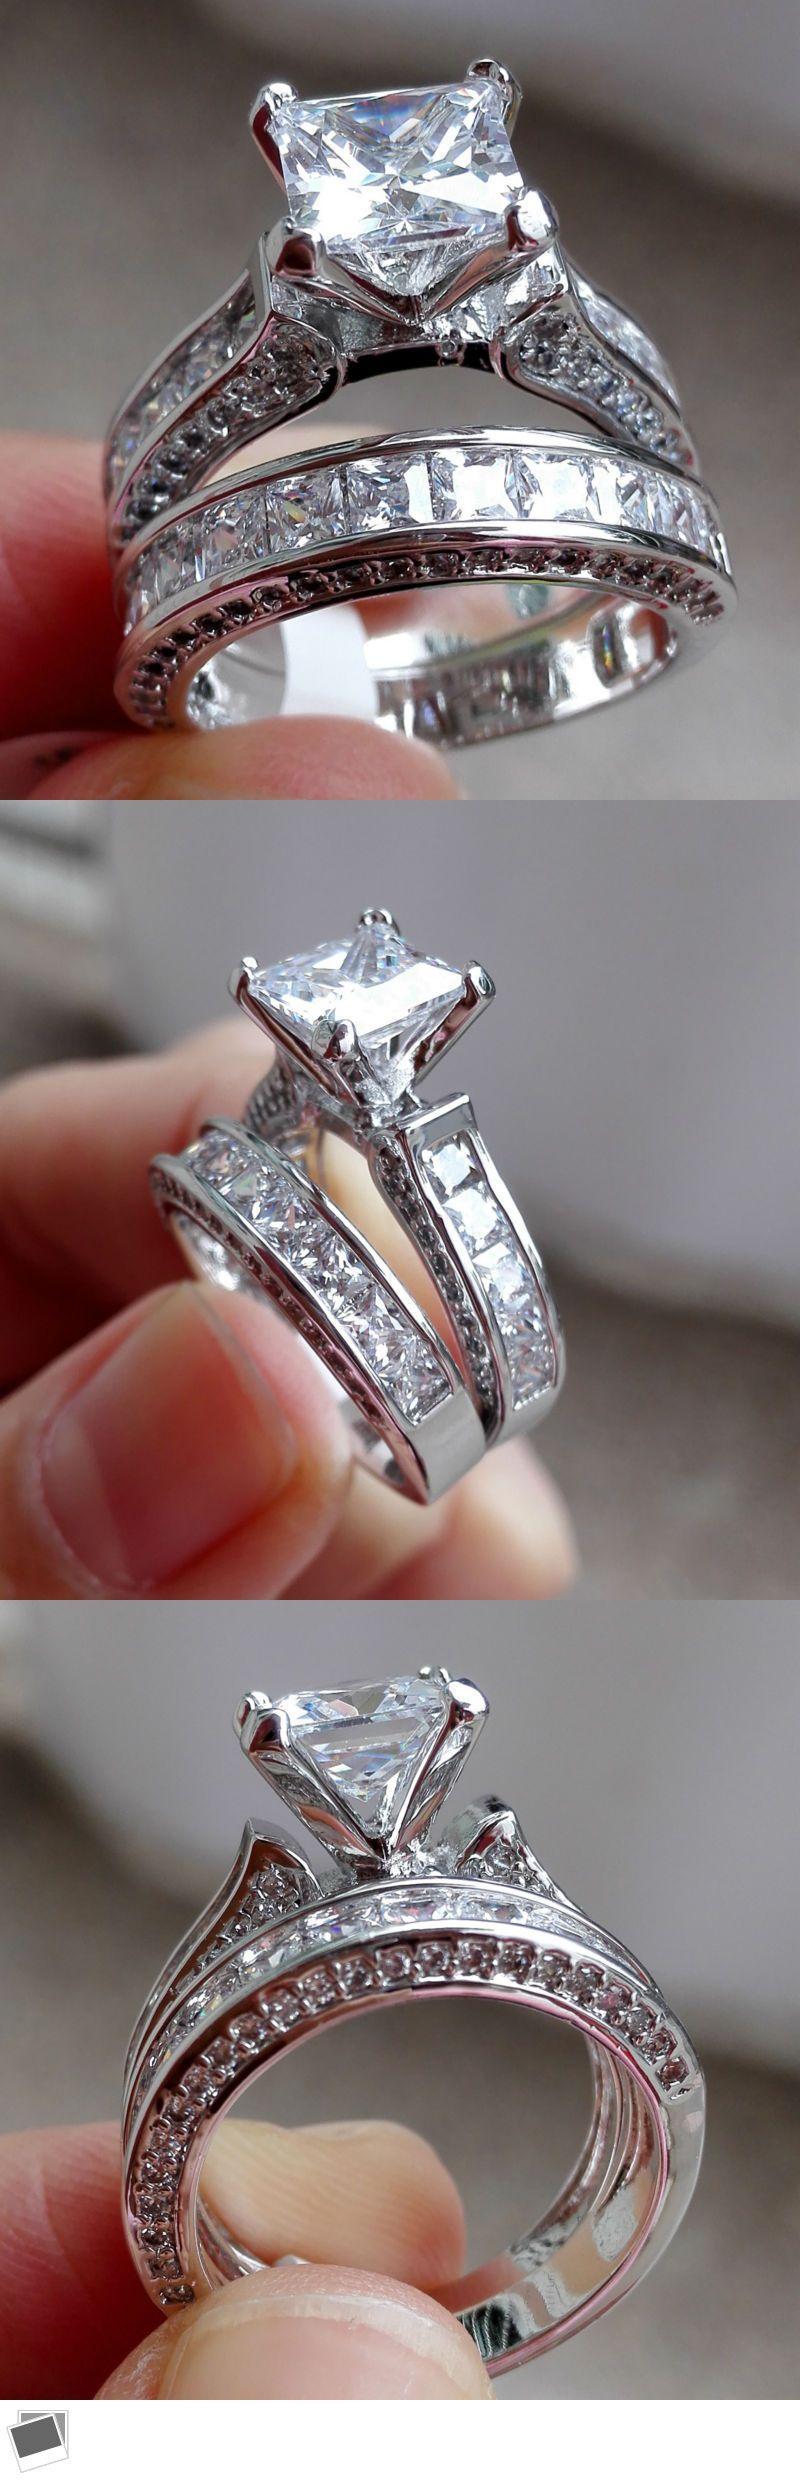 Rings 3 Ct Princess Cut Cz Solid 925 Sterling Silver